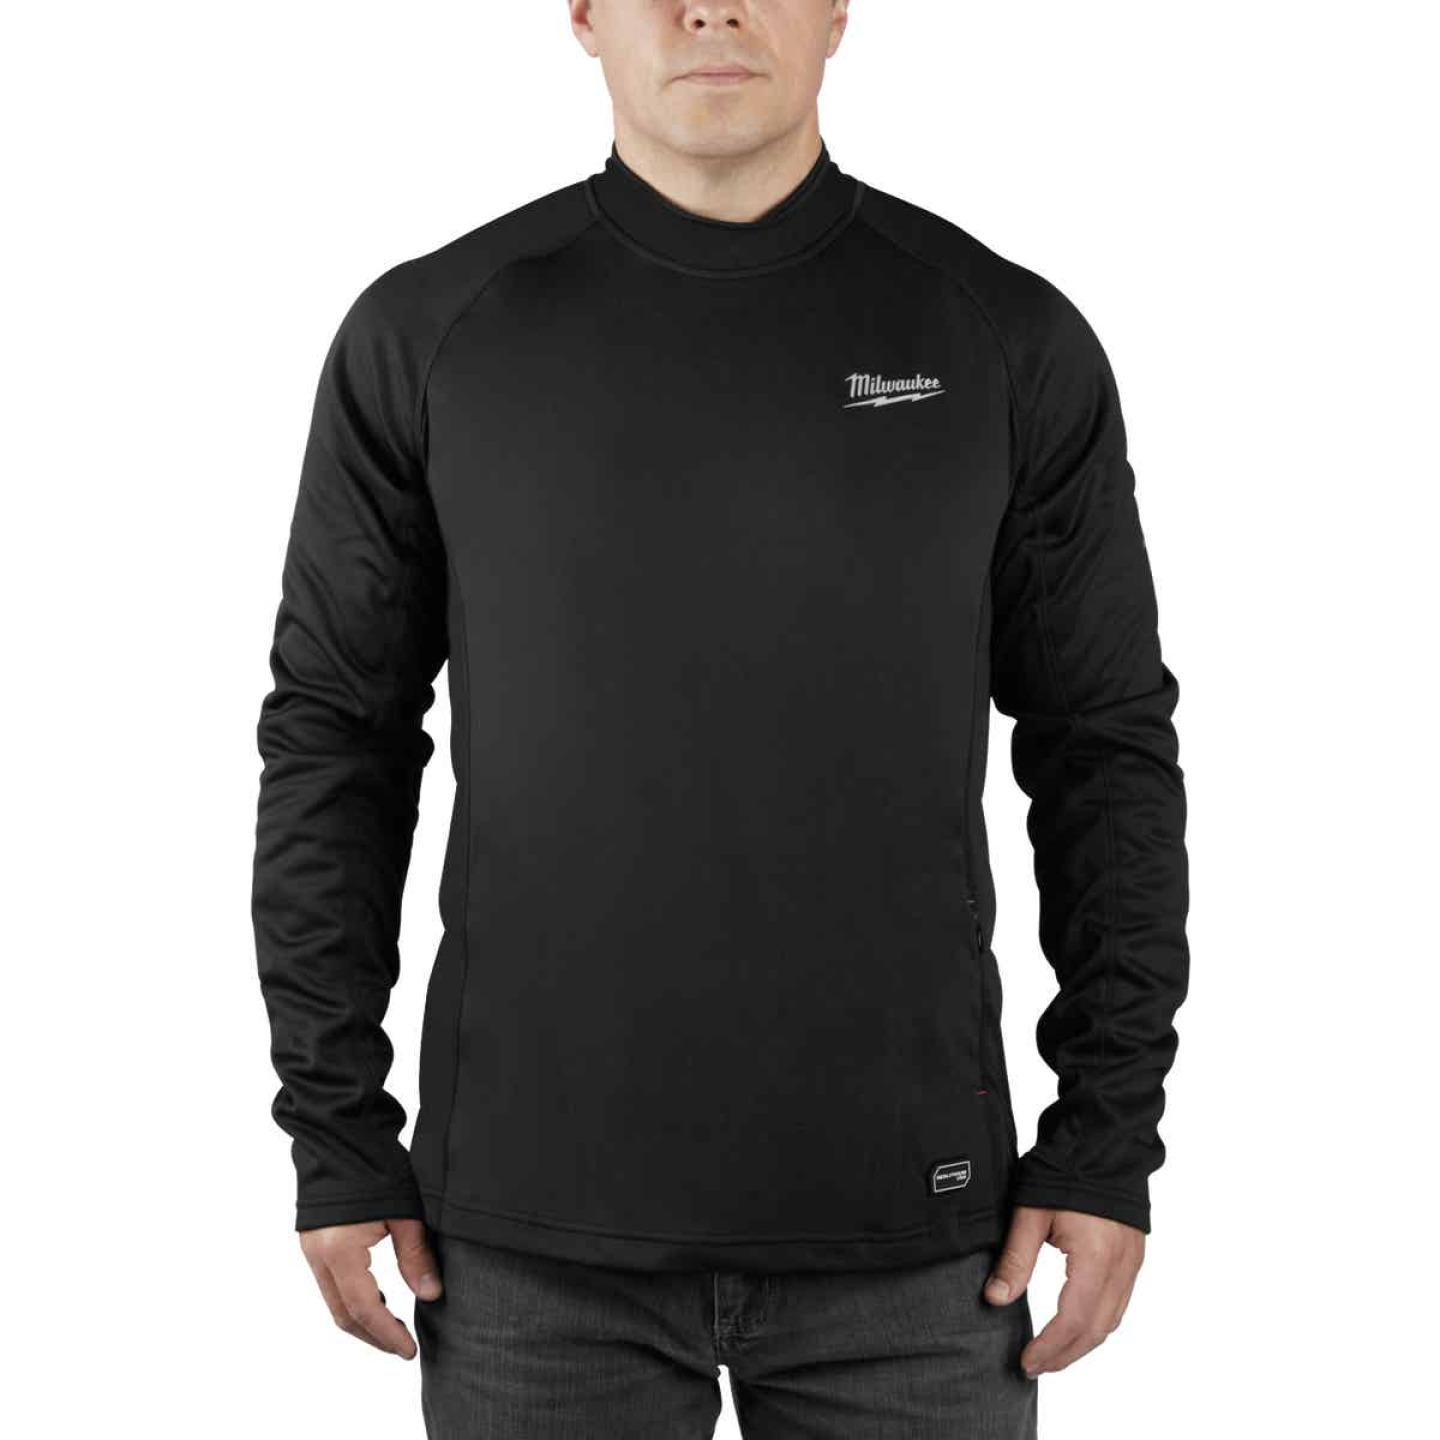 Milwaukee Workskin Medium Black Heated Midweight Base Layer Shirt Image 1